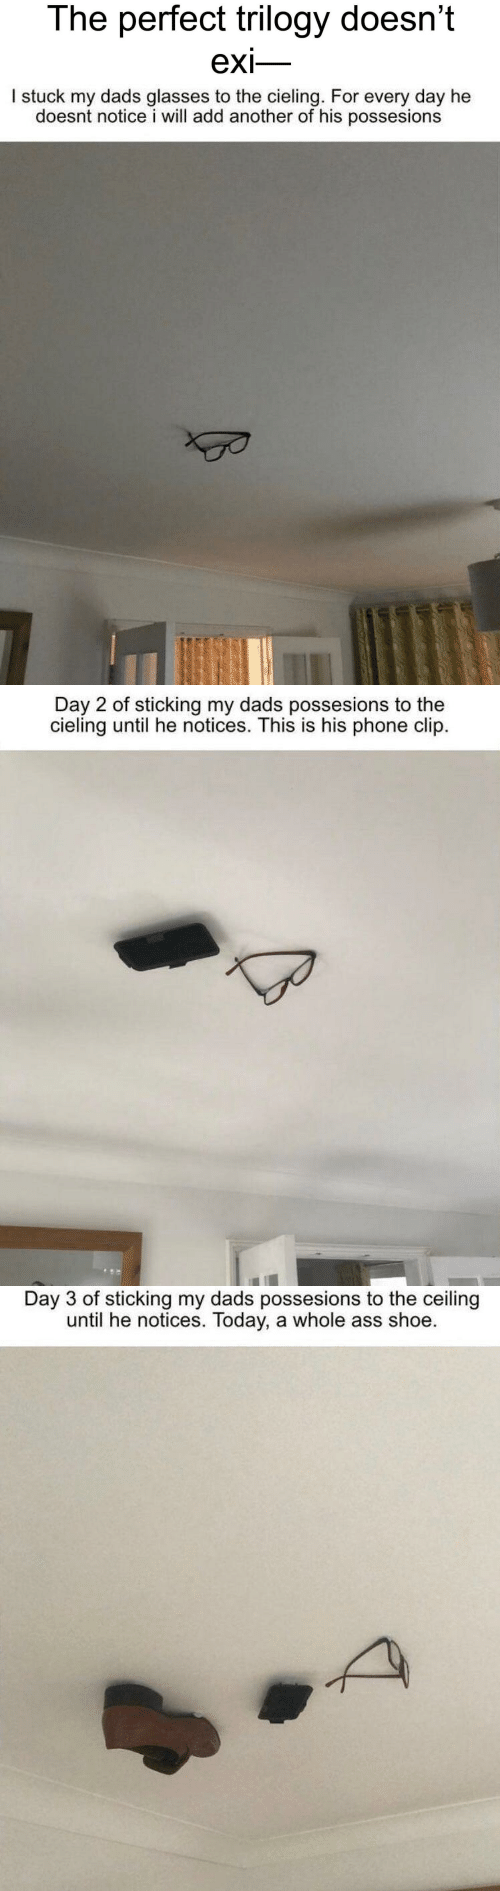 Glasses: The perfect trilogy doesn't  exi-   I stuck my dads glasses to the cieling. For every day he  doesnt notice i will add another of his possesions   Day 2 of sticking my dads possesions to the  cieling until he notices. This is his phone clip.   Day 3 of sticking my dads possesions to the ceiling  until he notices. Today, a whole ass shoe.